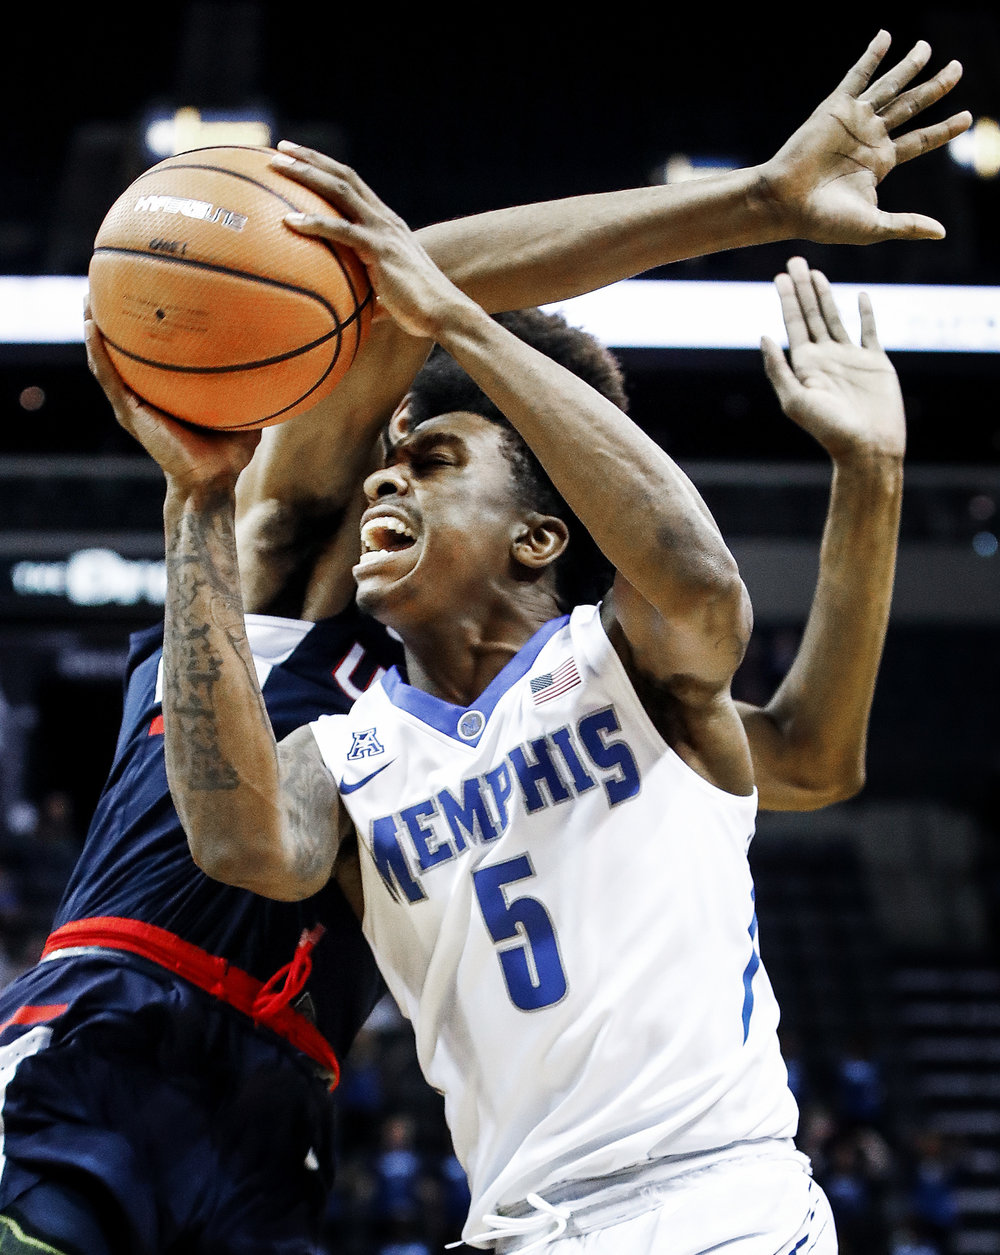 Memphis guard Kareem Brewton Jr., right, is fouled by a UConn player while driving the lane during the first half of an NCAA college basketball game in Memphis, Tenn., Tuesday, Jan. 16, 2018. (Mark Weber/AP)